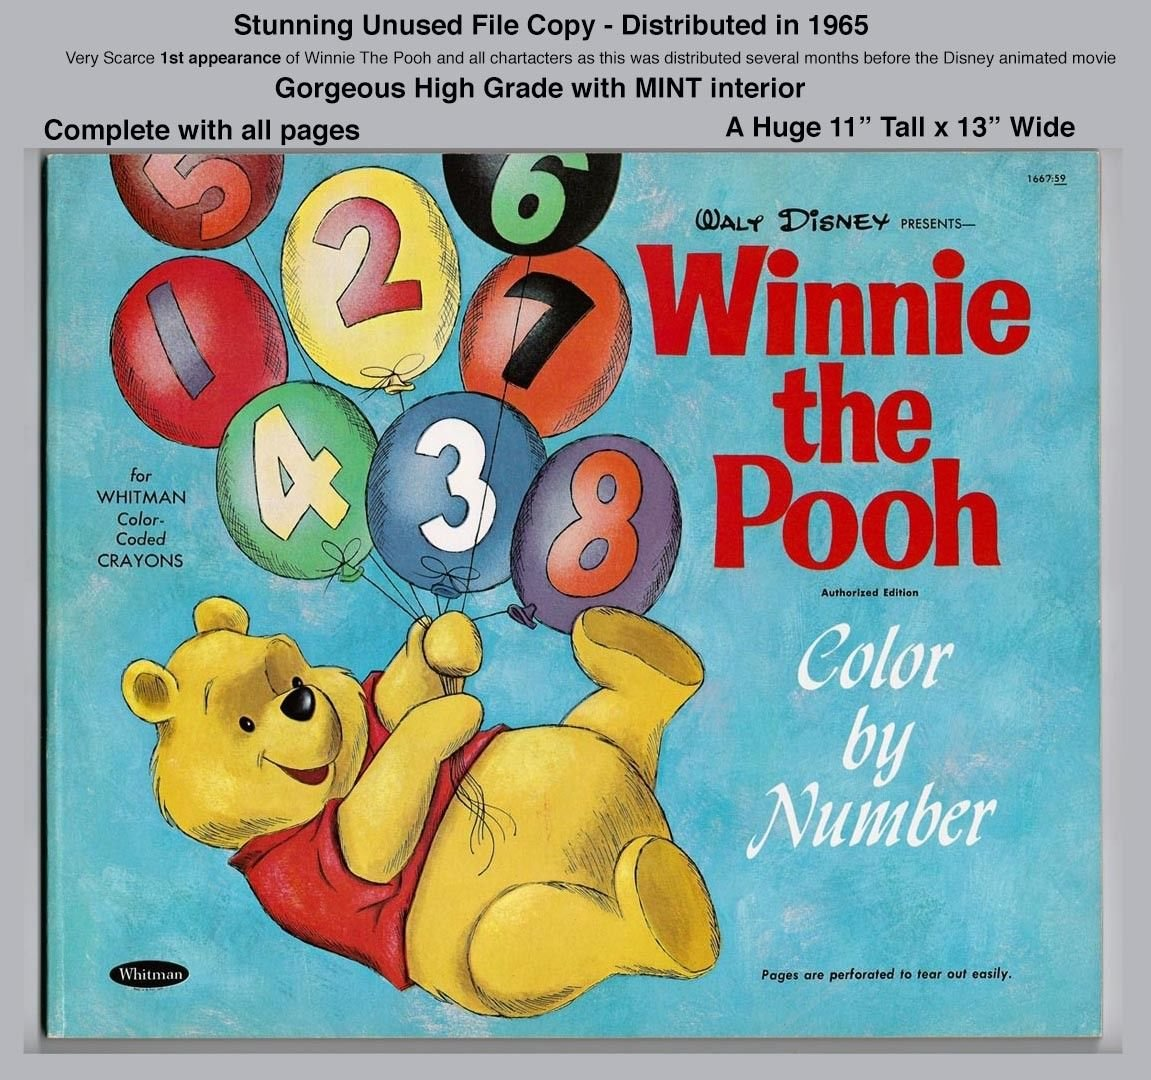 WINNIE THE POOH COLOR BY NUMBER - RARE UNUSED FILE COPY - 1965 ...